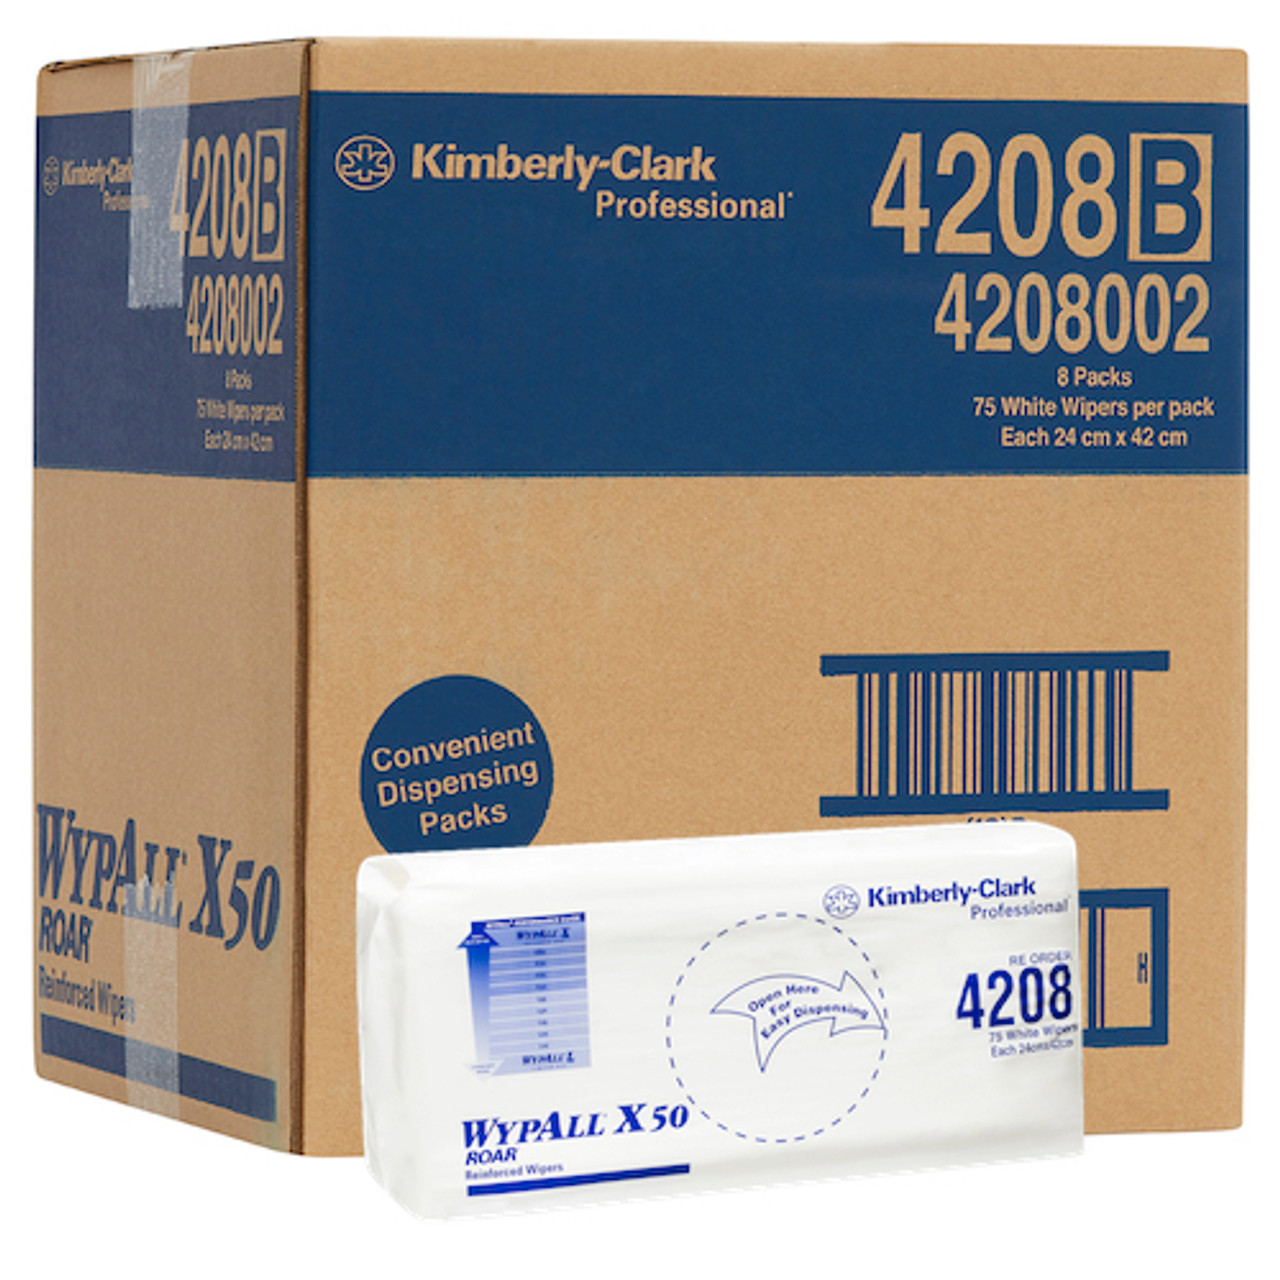 WyPall X50 Reinforced Single Sheet Wipers 8 Packs x 75 Wipers (4208) Kimberly Clark Professional